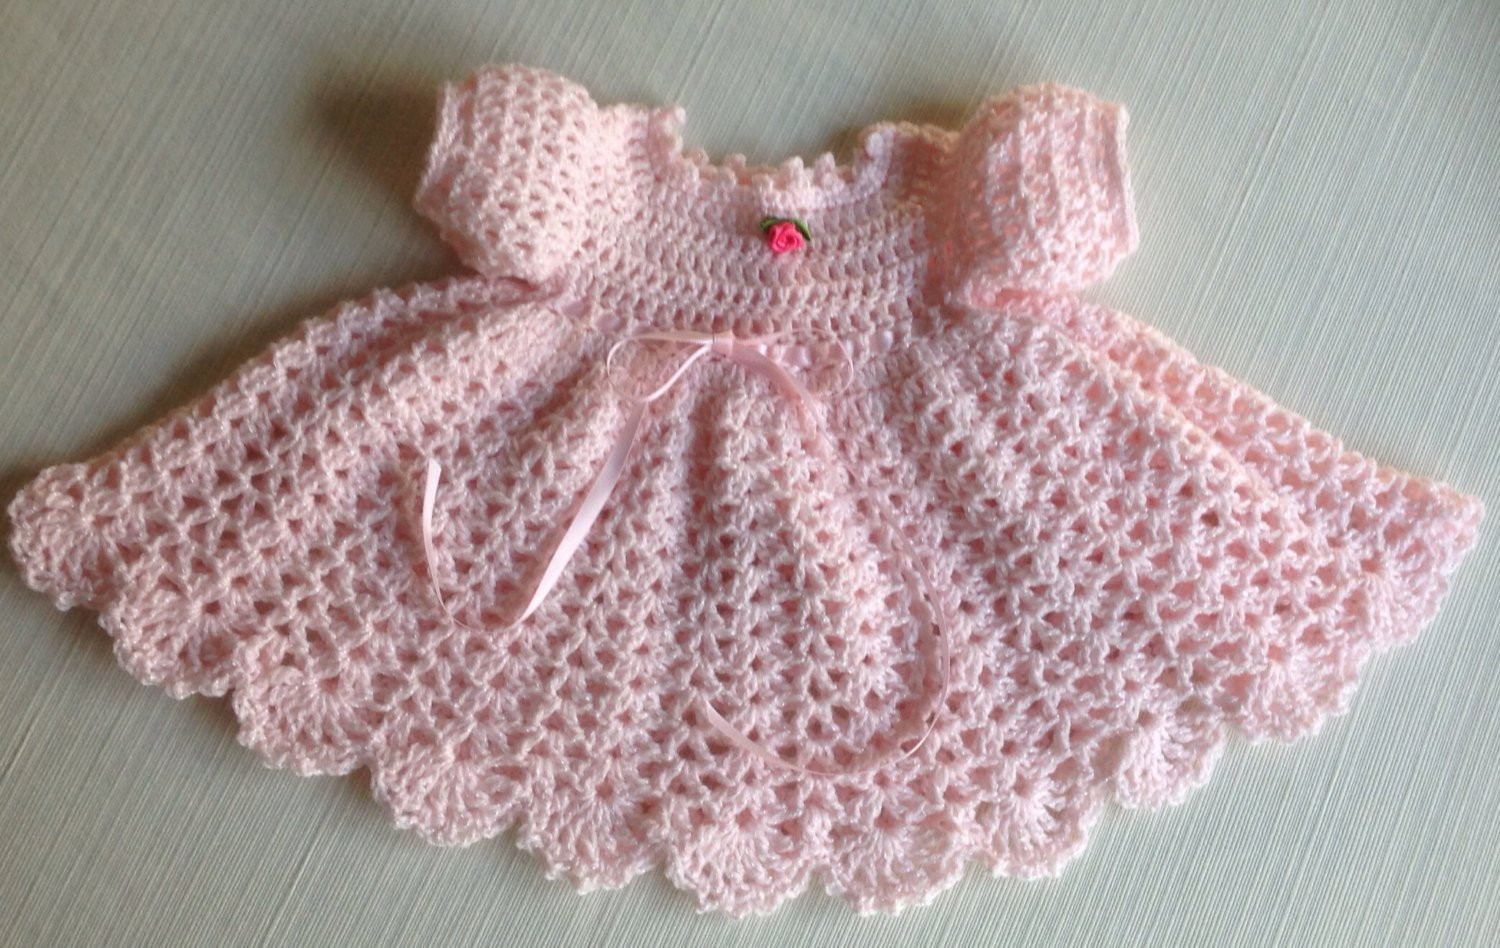 Crochet Baby Clothing Beautiful Newborn Crochet Baby Dress Mary Pattern Updated Long Sleeves Of Amazing 44 Ideas Crochet Baby Clothing